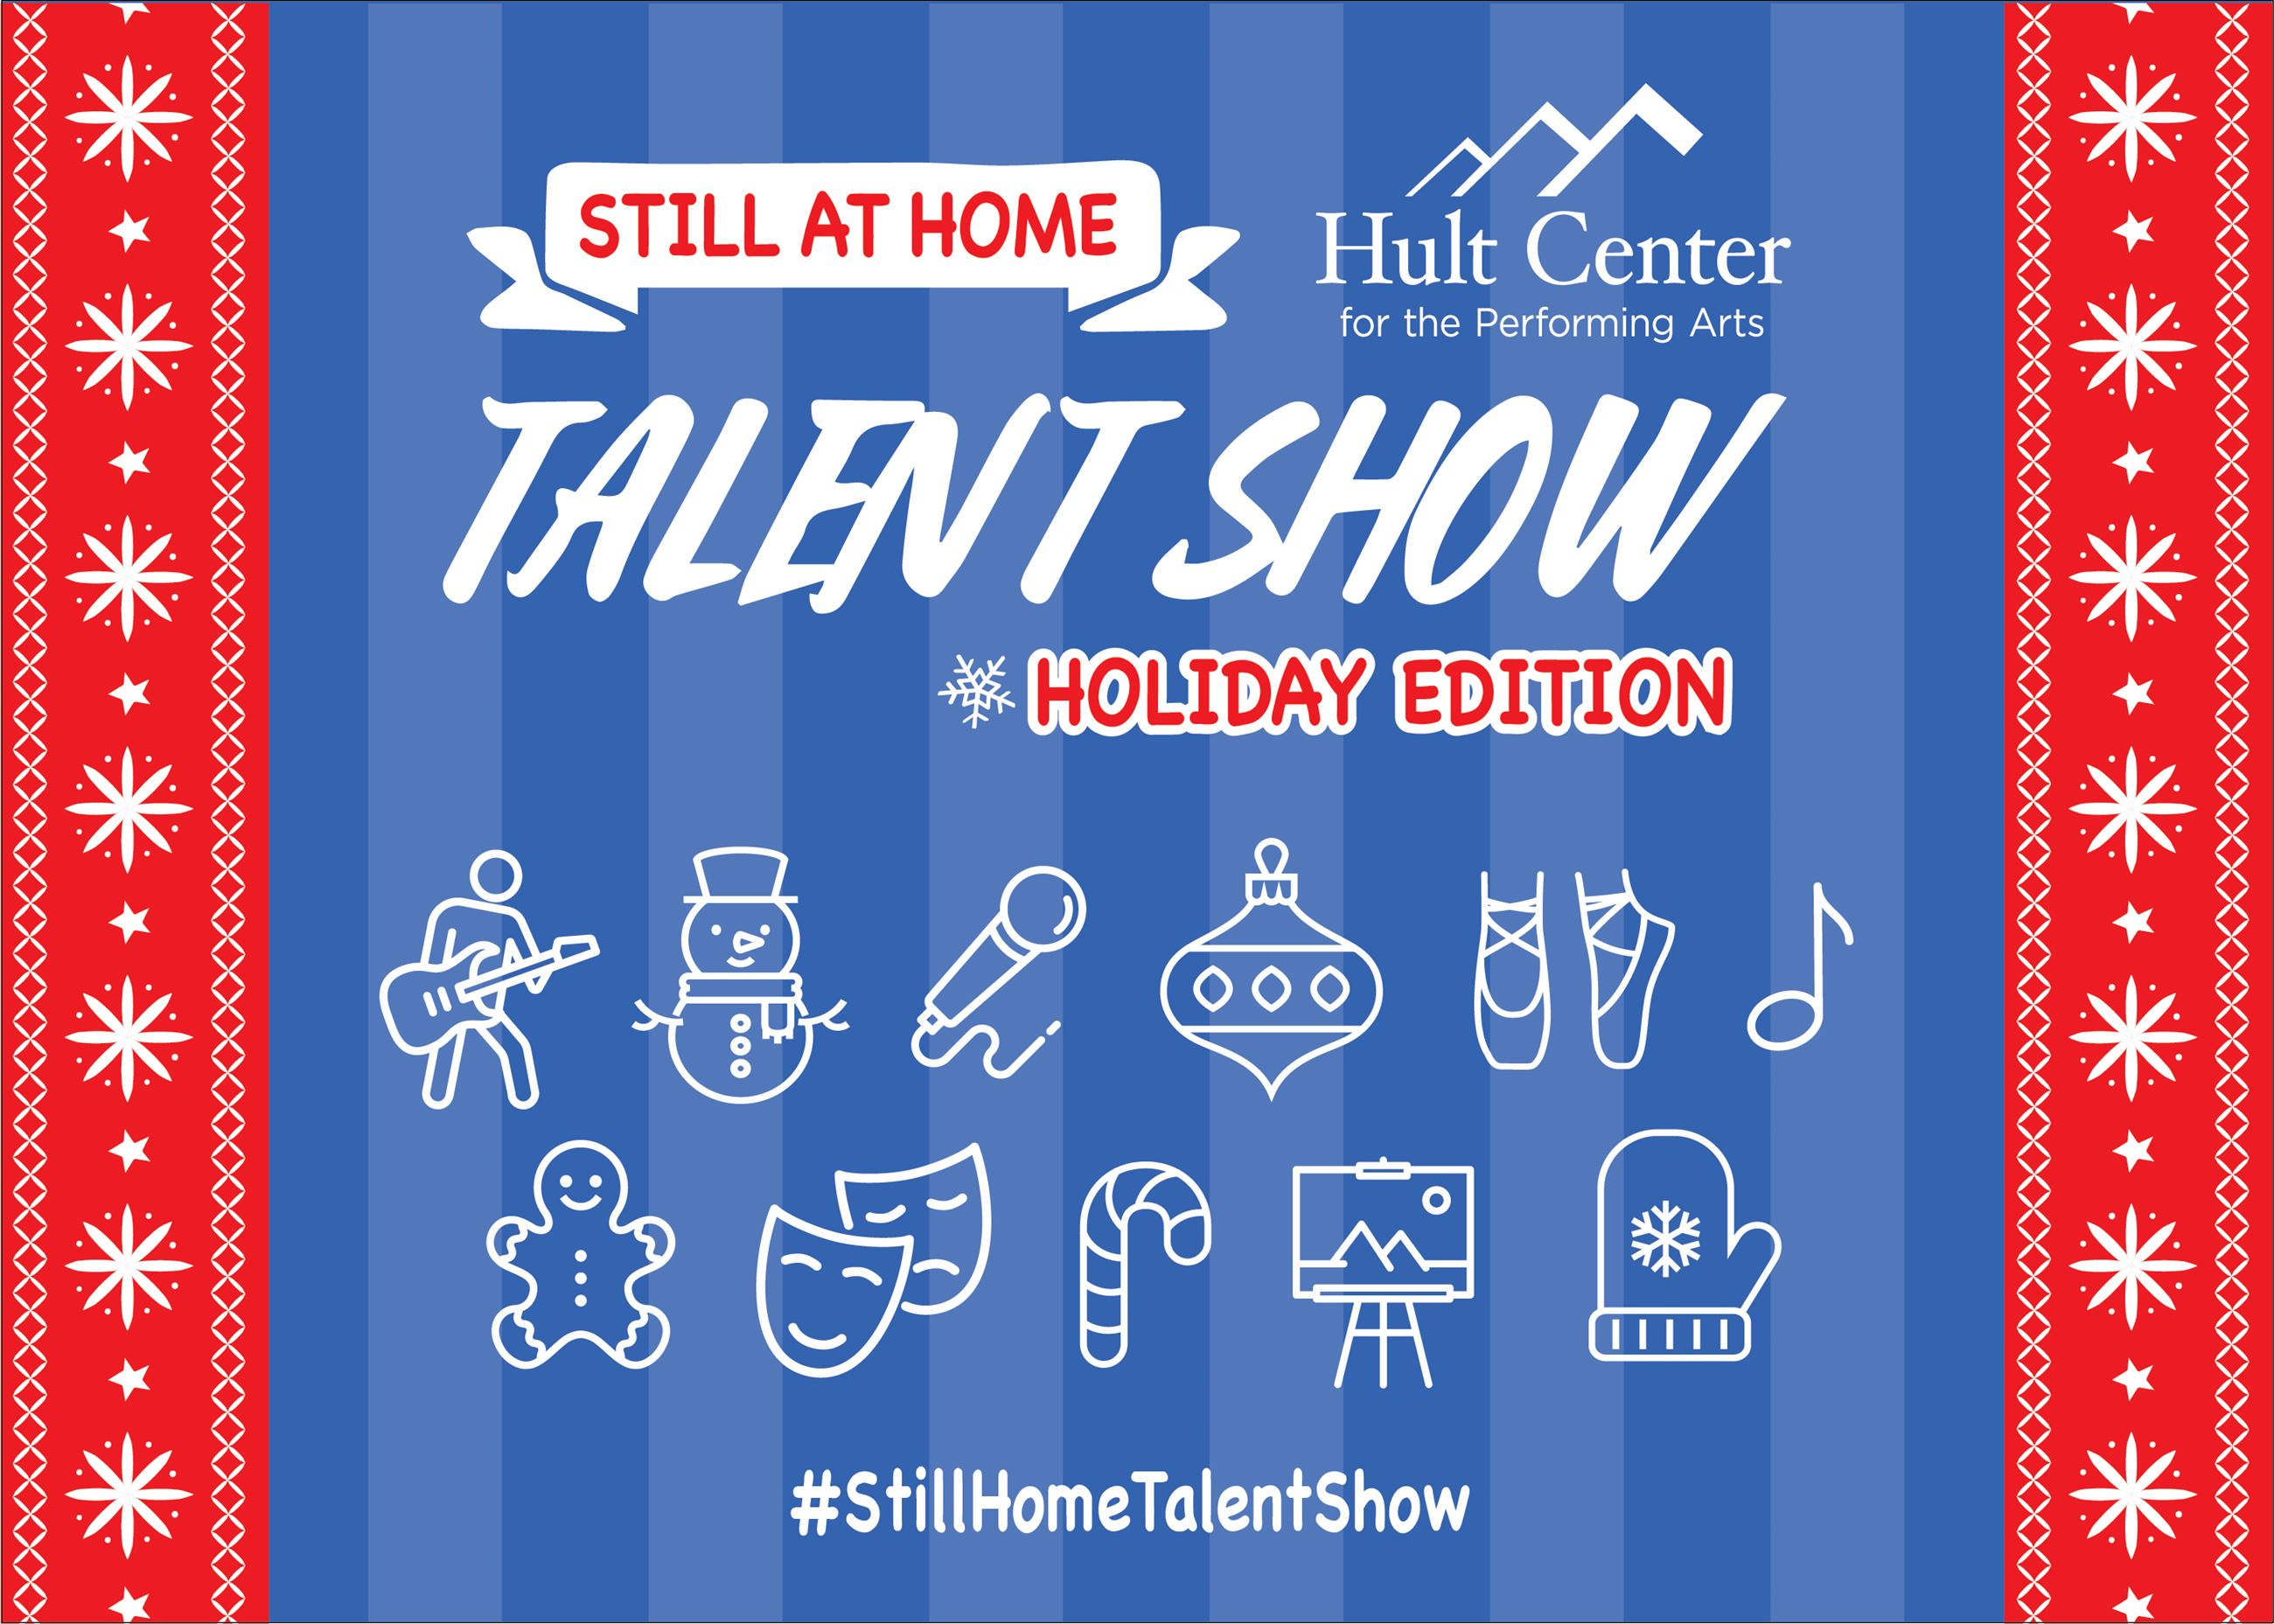 Still at Home Hult Center Talent Show Holiday Edition